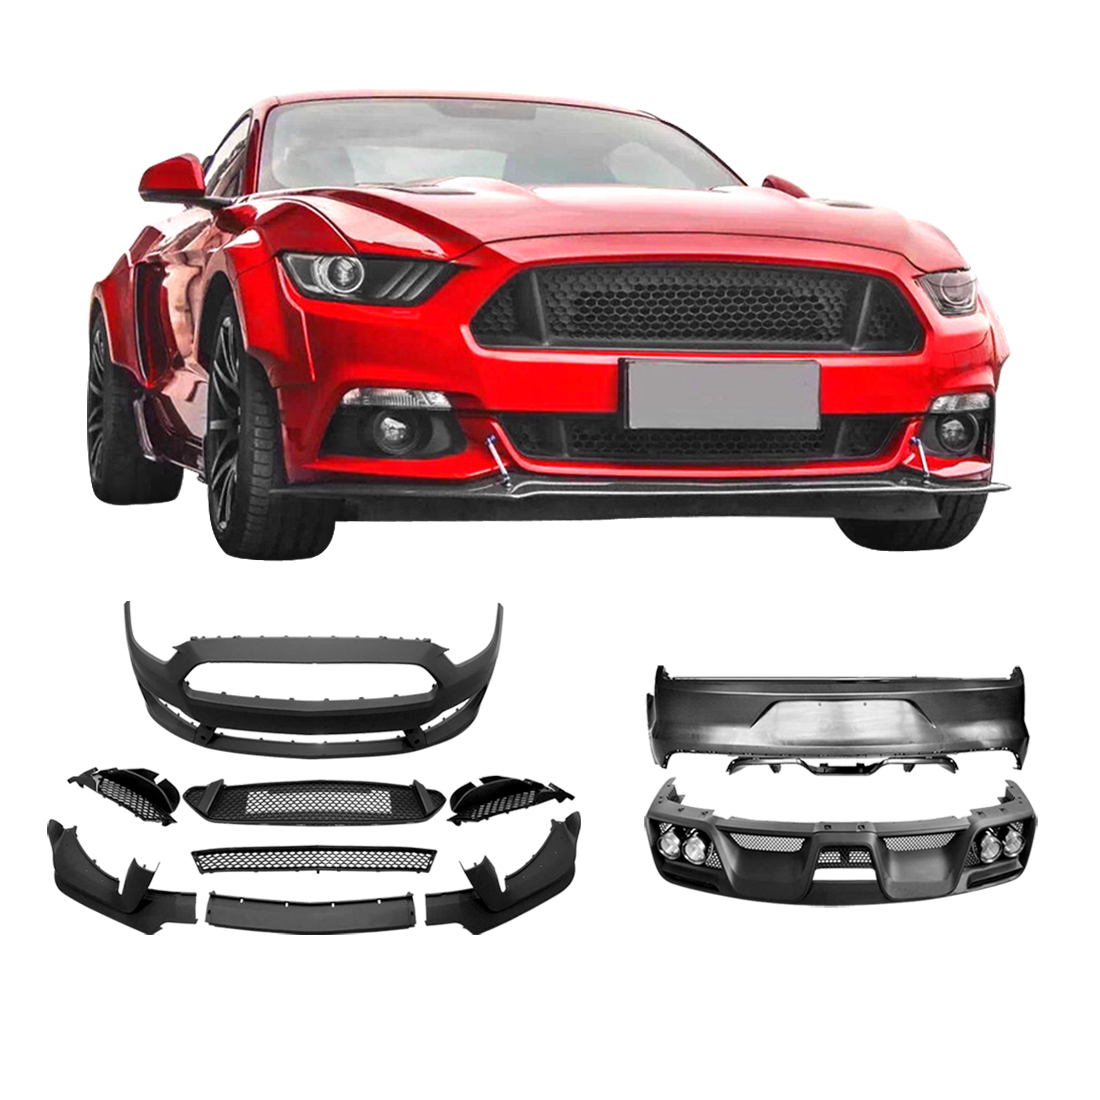 Details About Fit 15 17 Ford Mustang Body Kit Front And Rear Pers Gt350 Style Grille